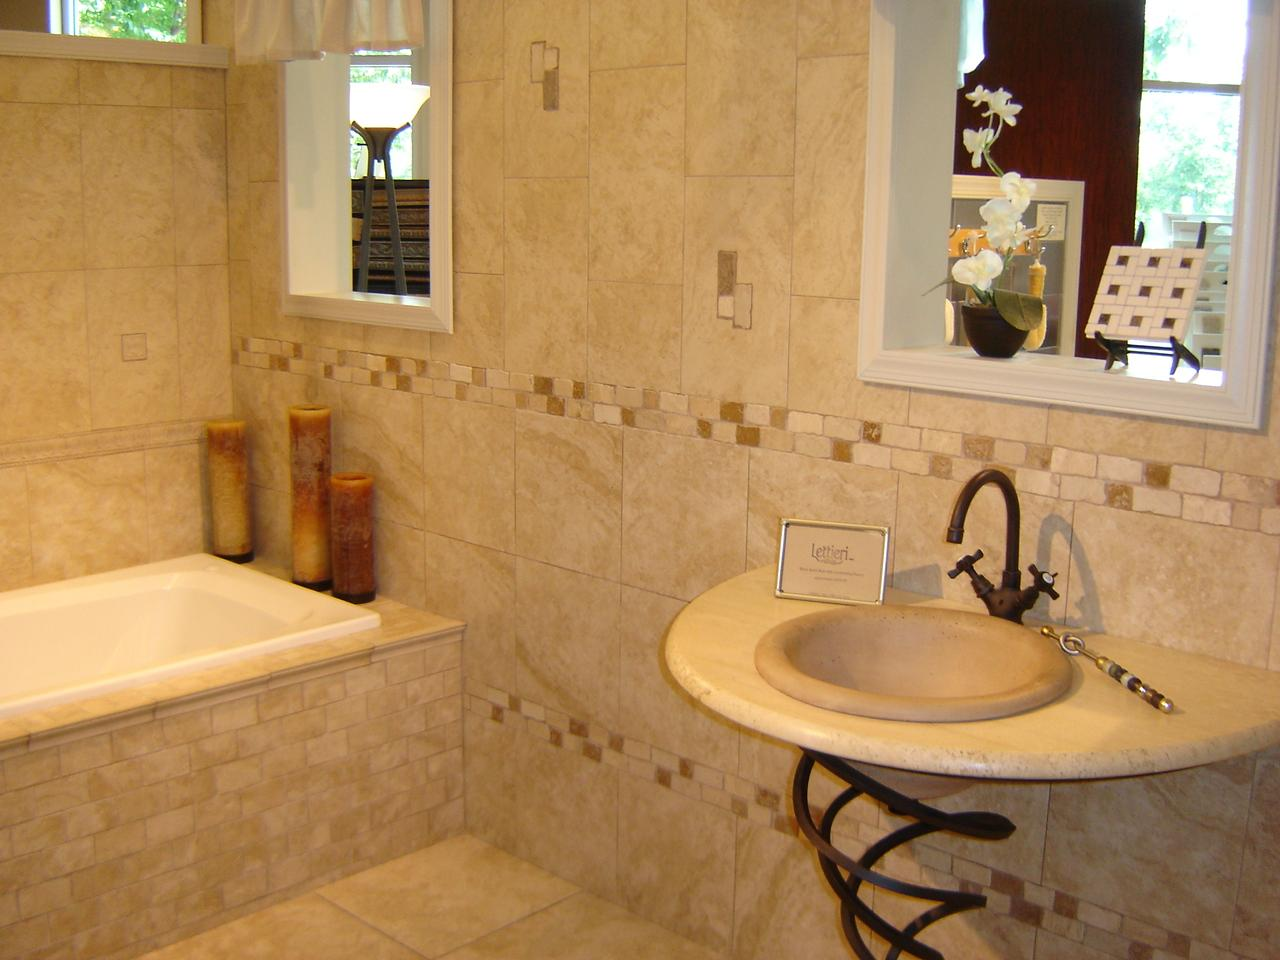 Impressive Bathroom Tile Design 1280 x 960 · 120 kB · jpeg